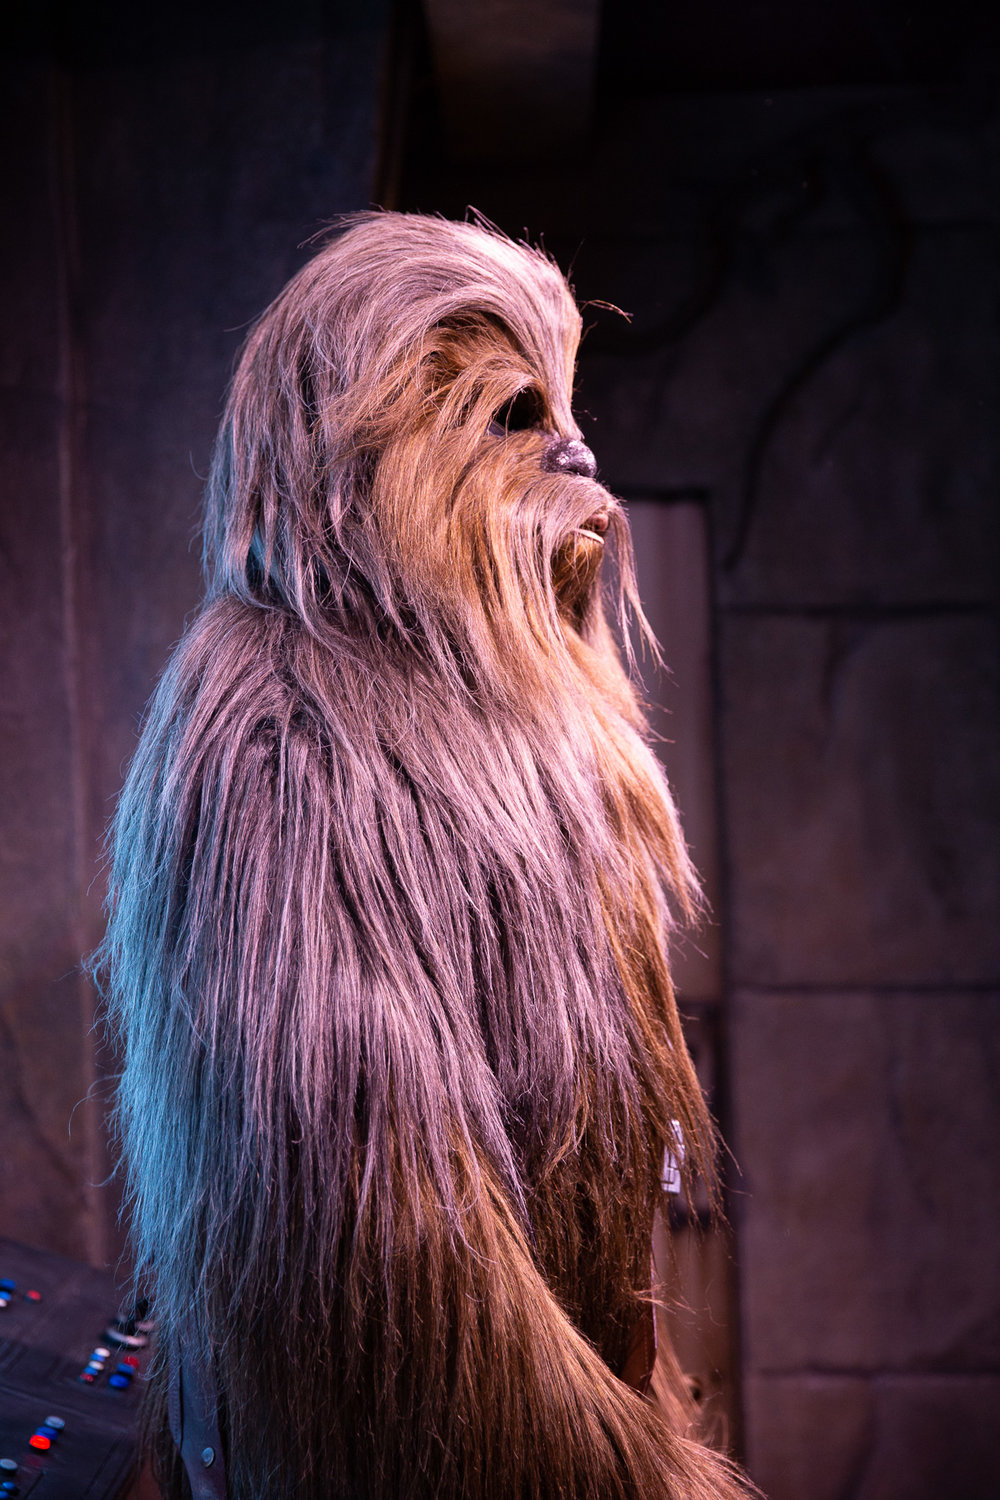 chewy (1 of 1).jpg